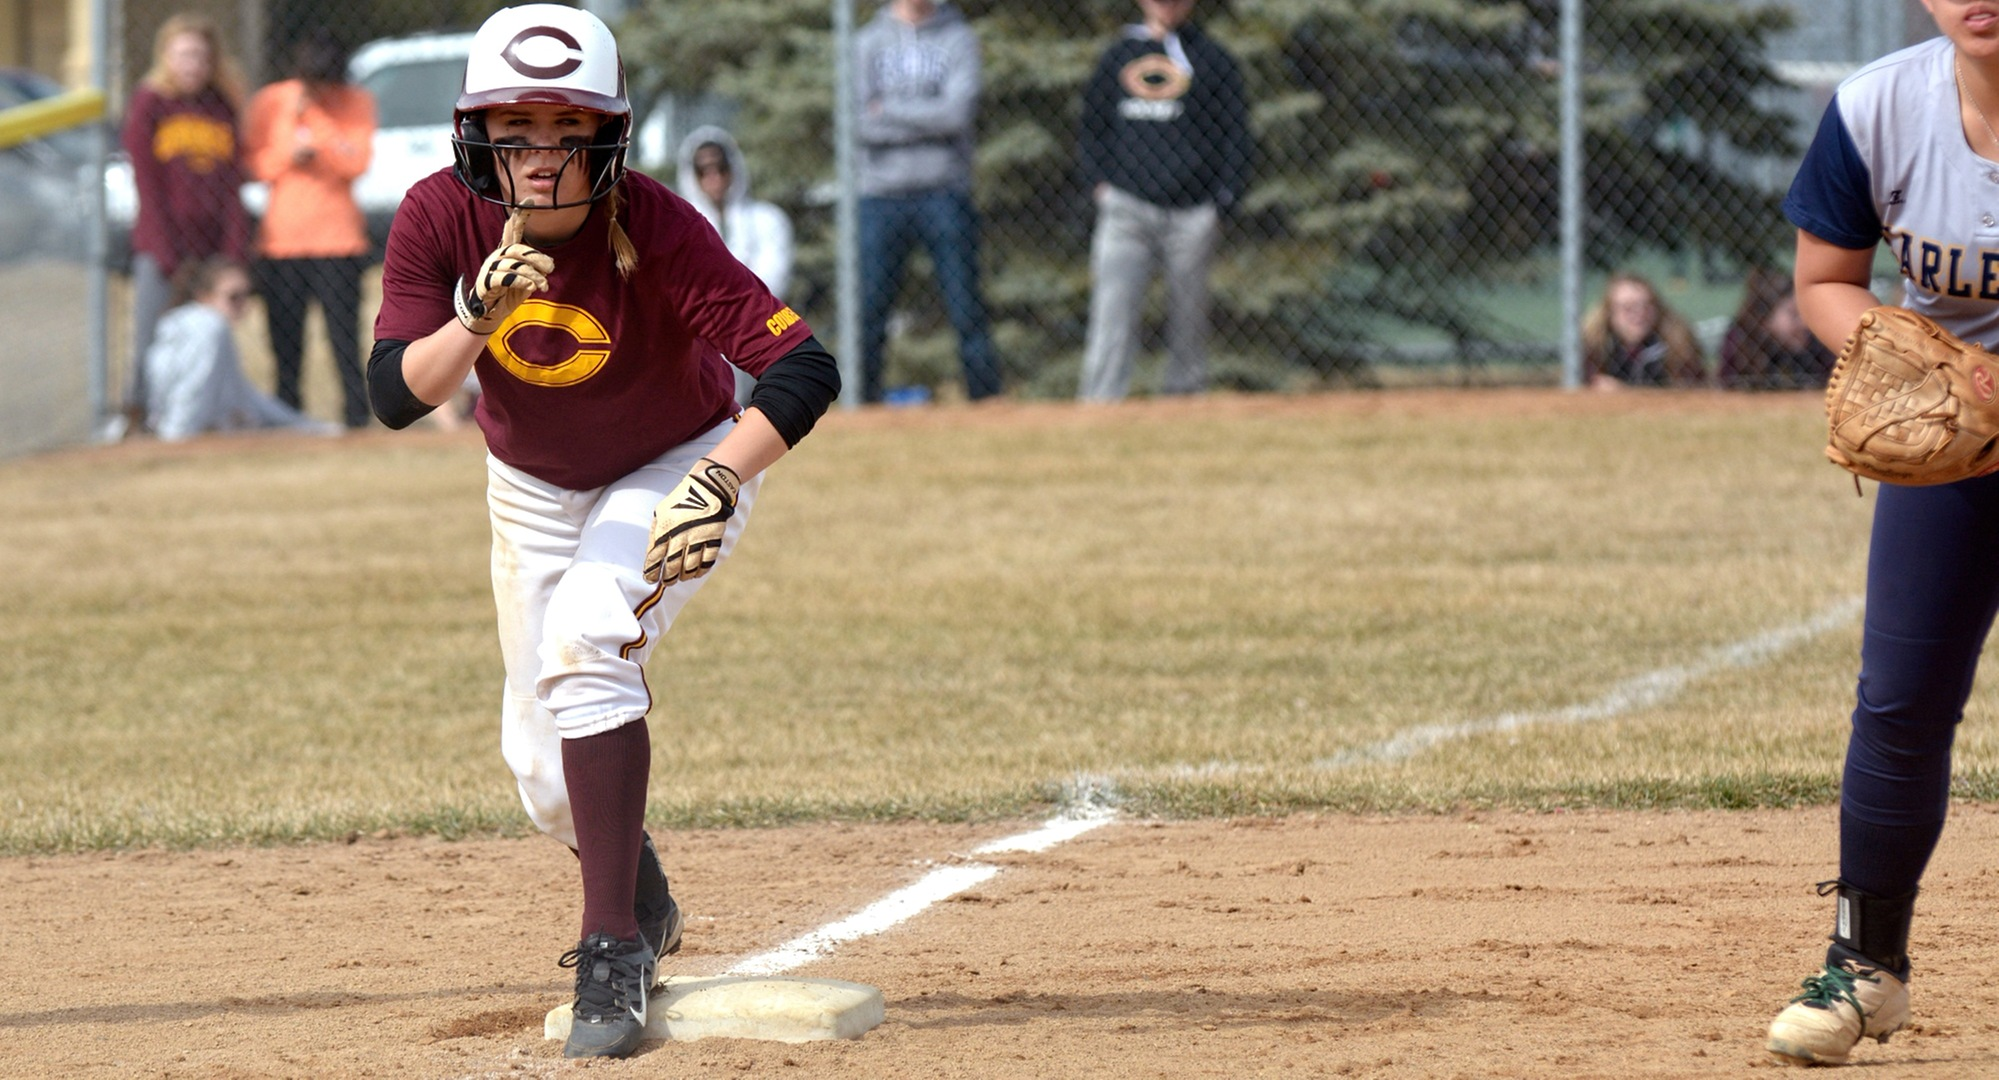 Cora Zackrison gets ready to take a lead off third base during the Cobbers doubleheader with Carleton.